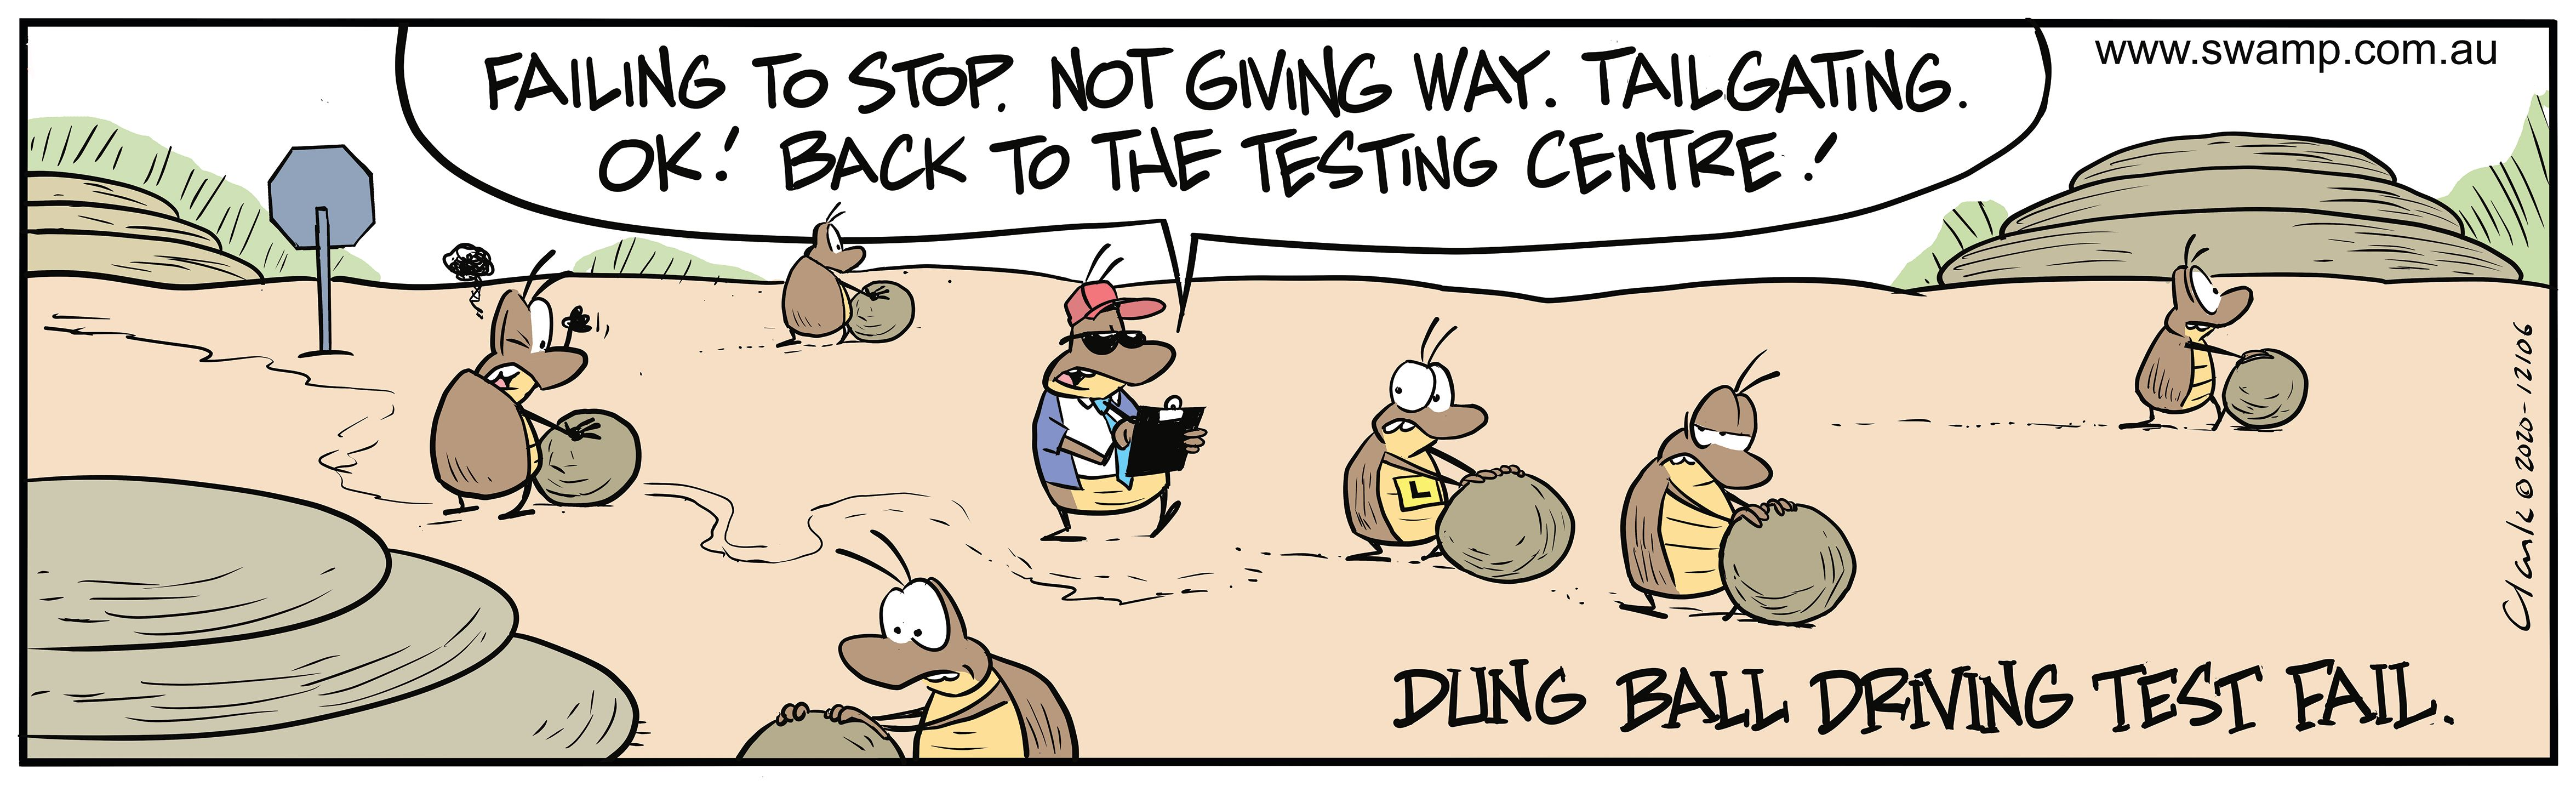 Dung Beetles Driving Test